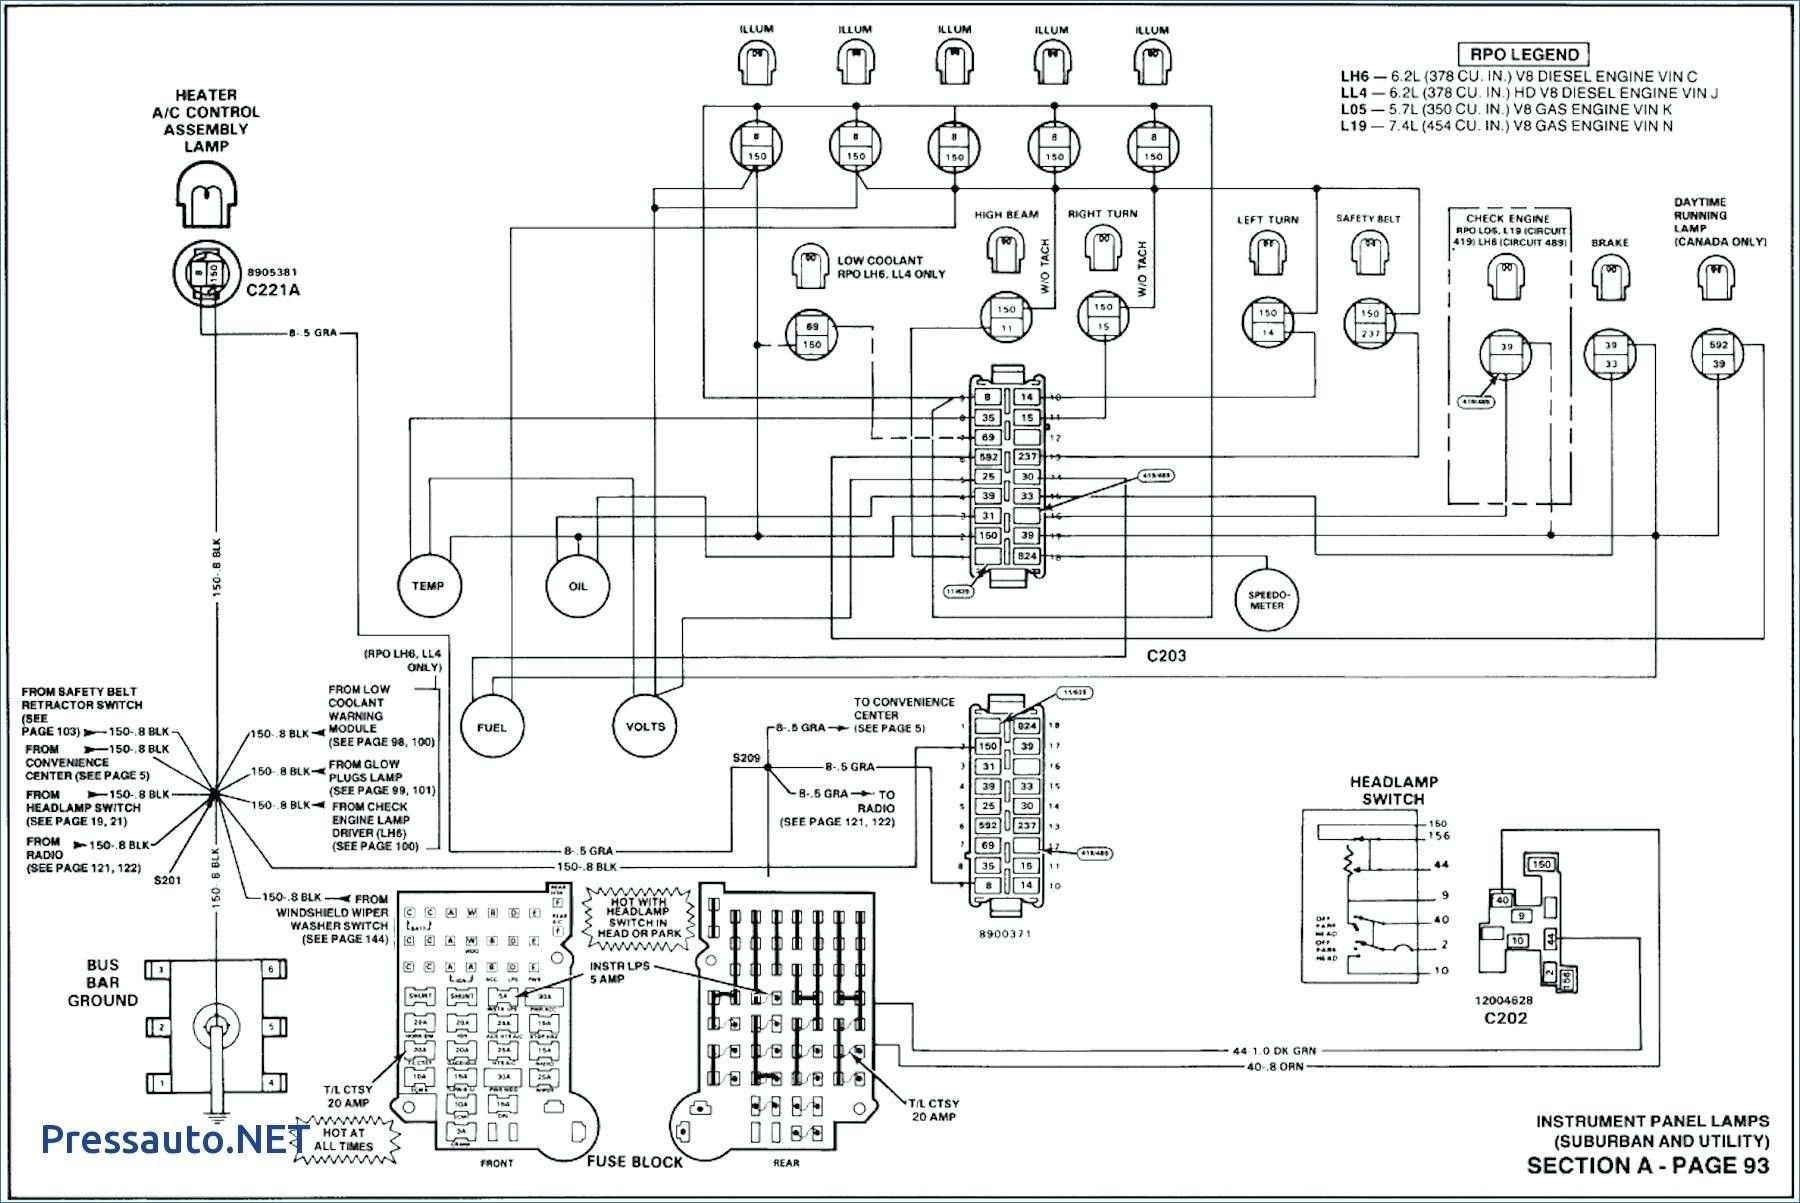 Unique Dual Immersion Heater Switch Wiring Diagram